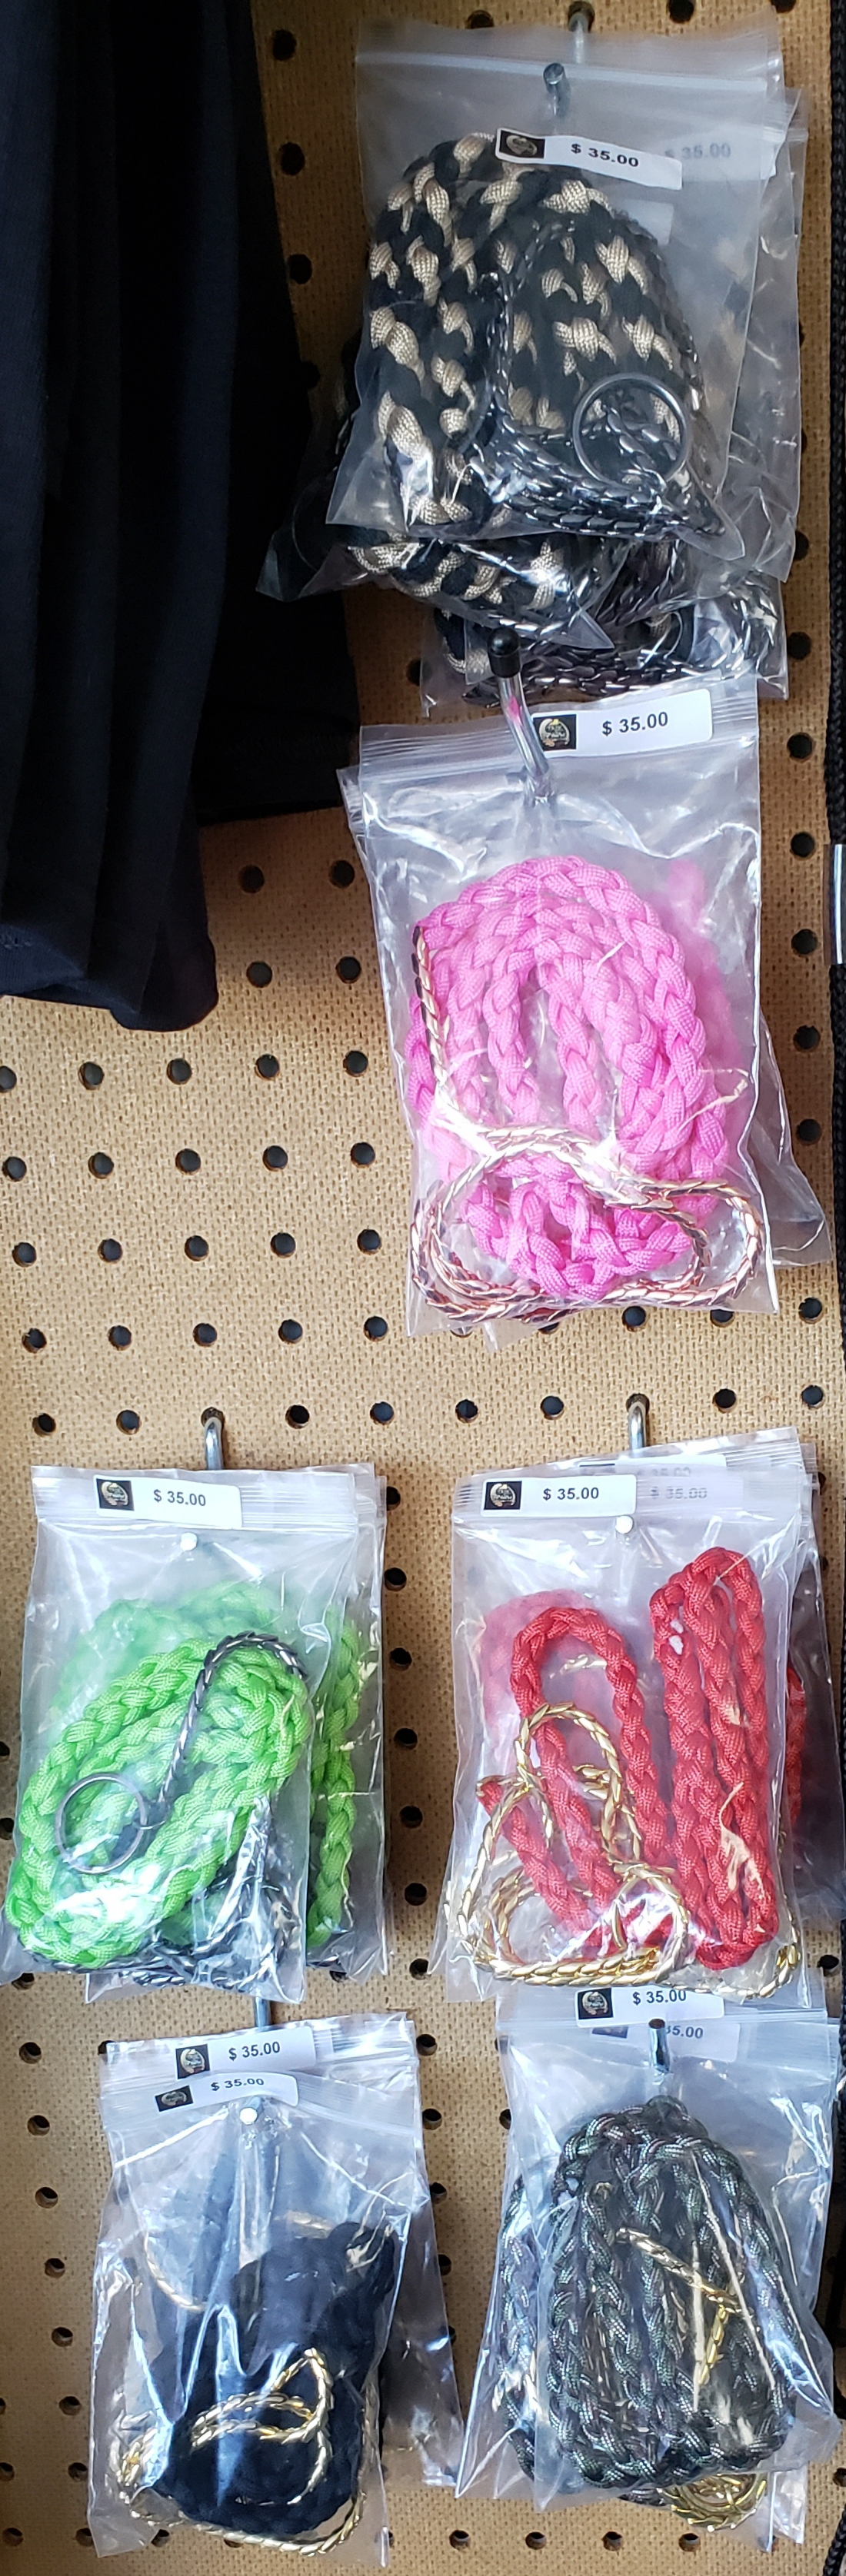 PARACORD LEADS $35